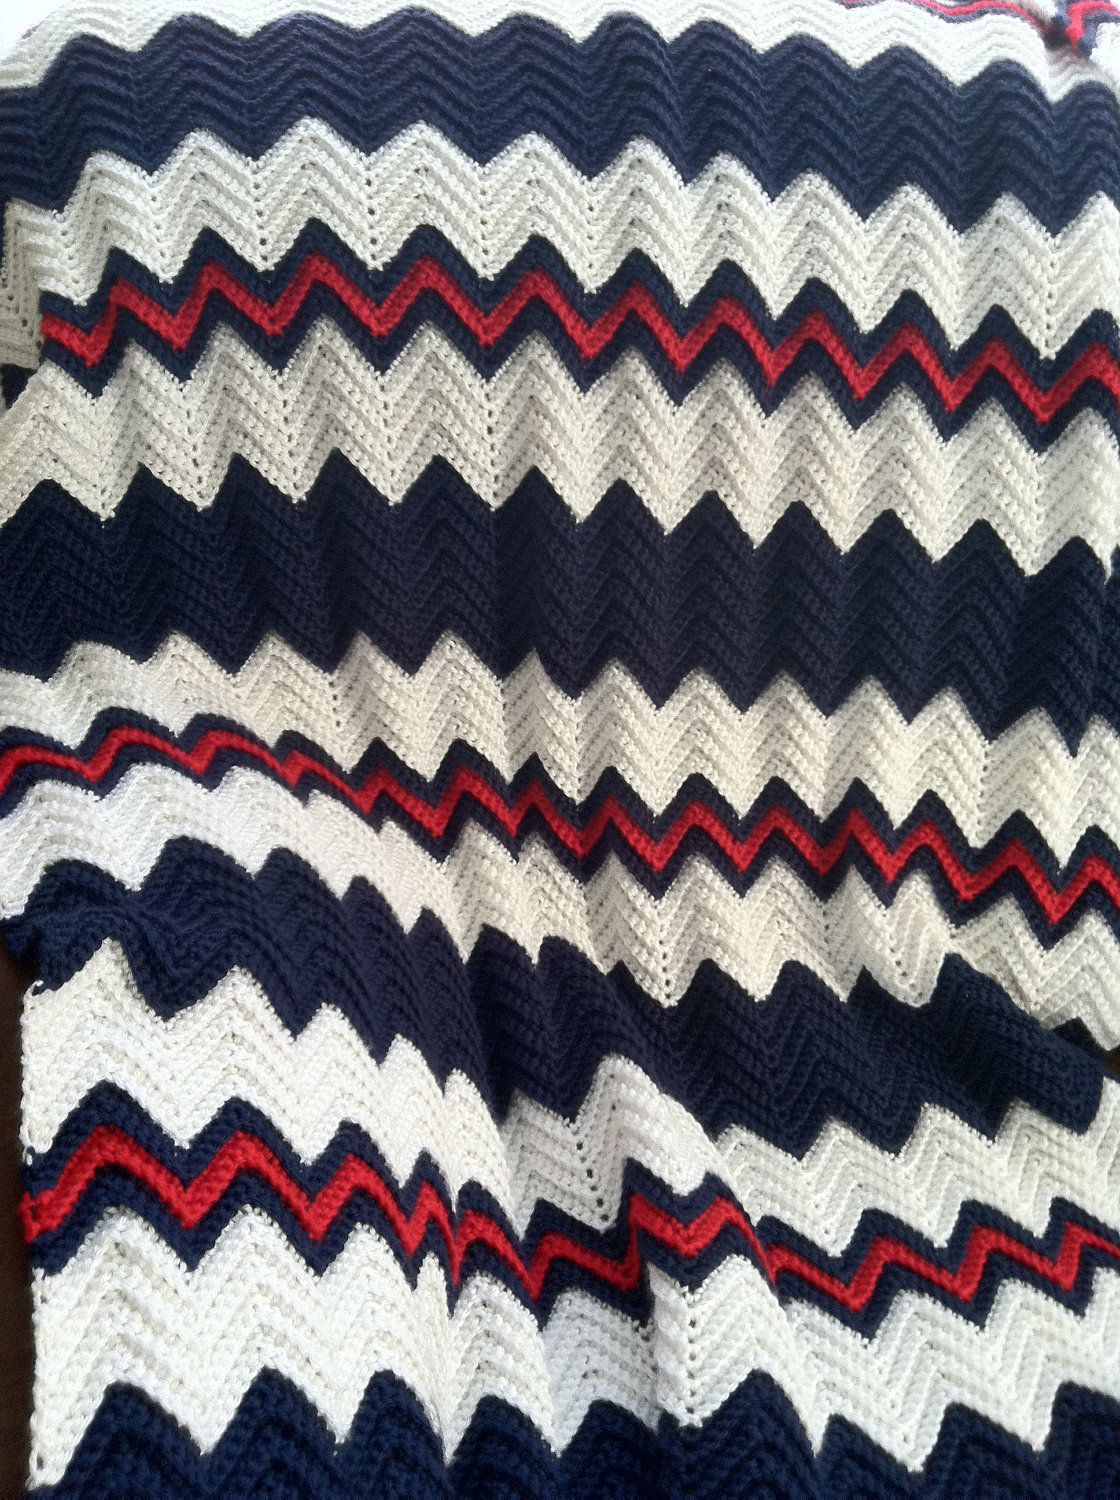 crochet ripple afghan in navy blue, white and red | Cobijas para ...